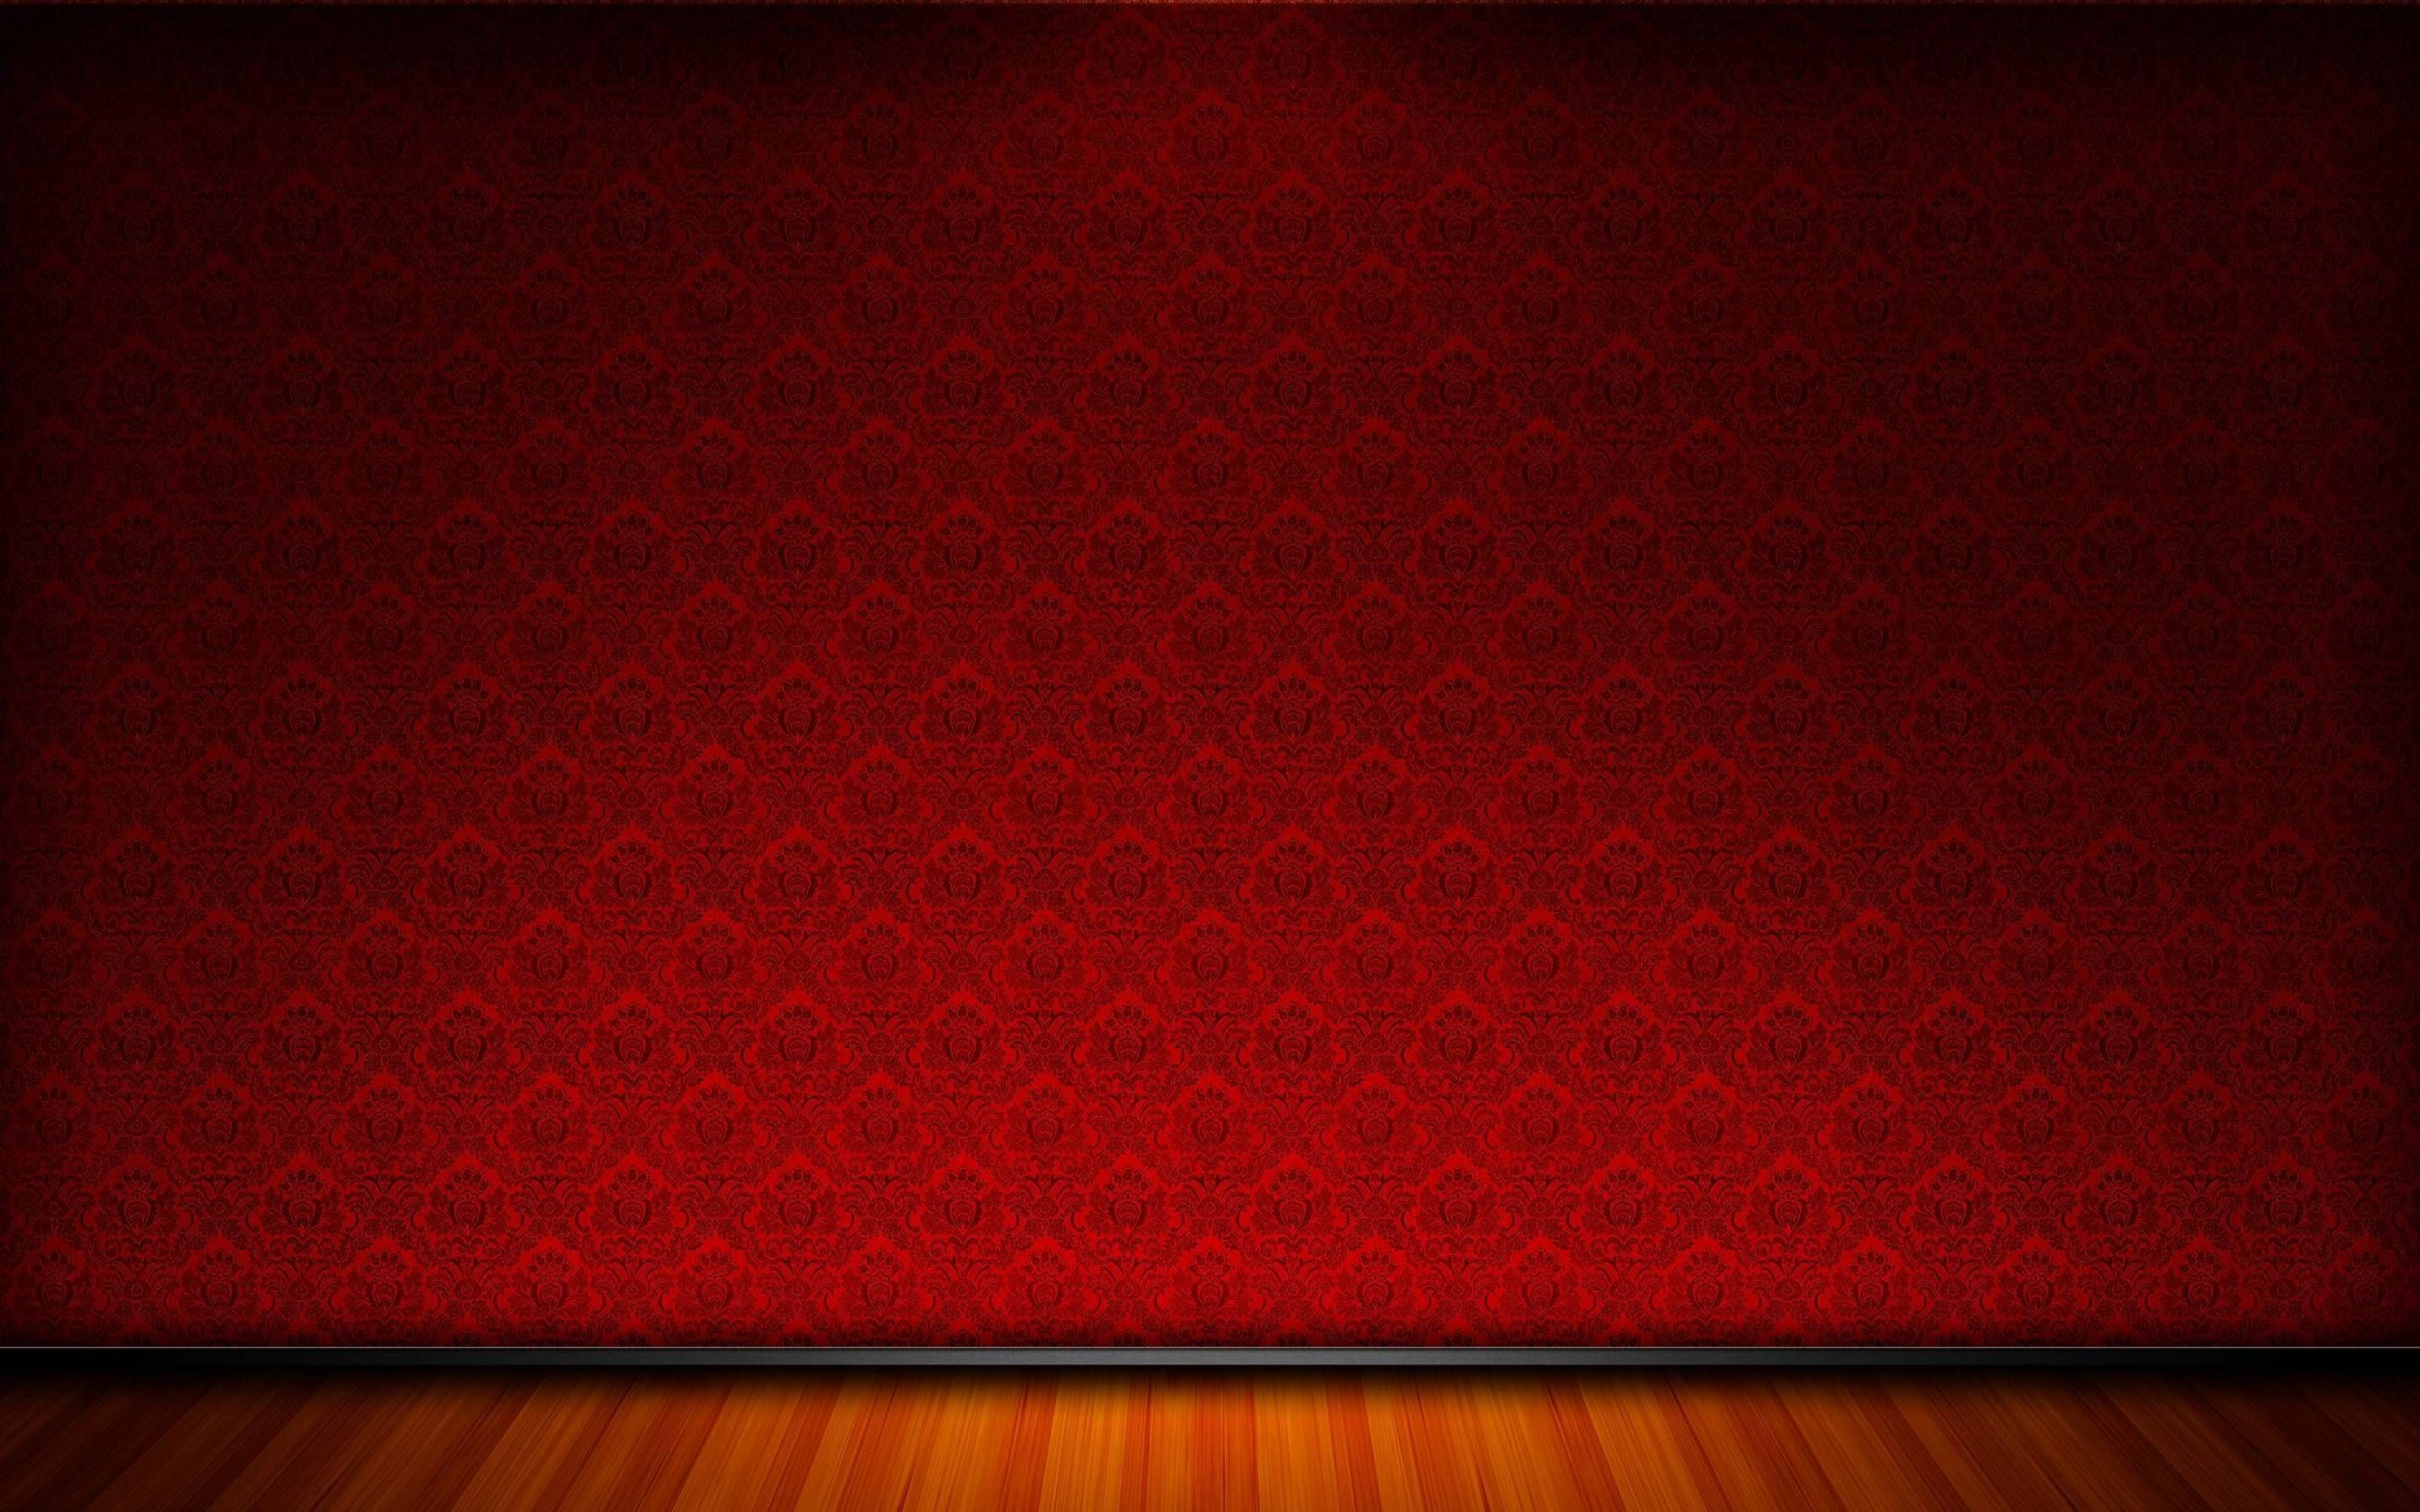 maroon color backgrounds wallpaper cave maroon background maroon color red rooms maroon color backgrounds wallpaper